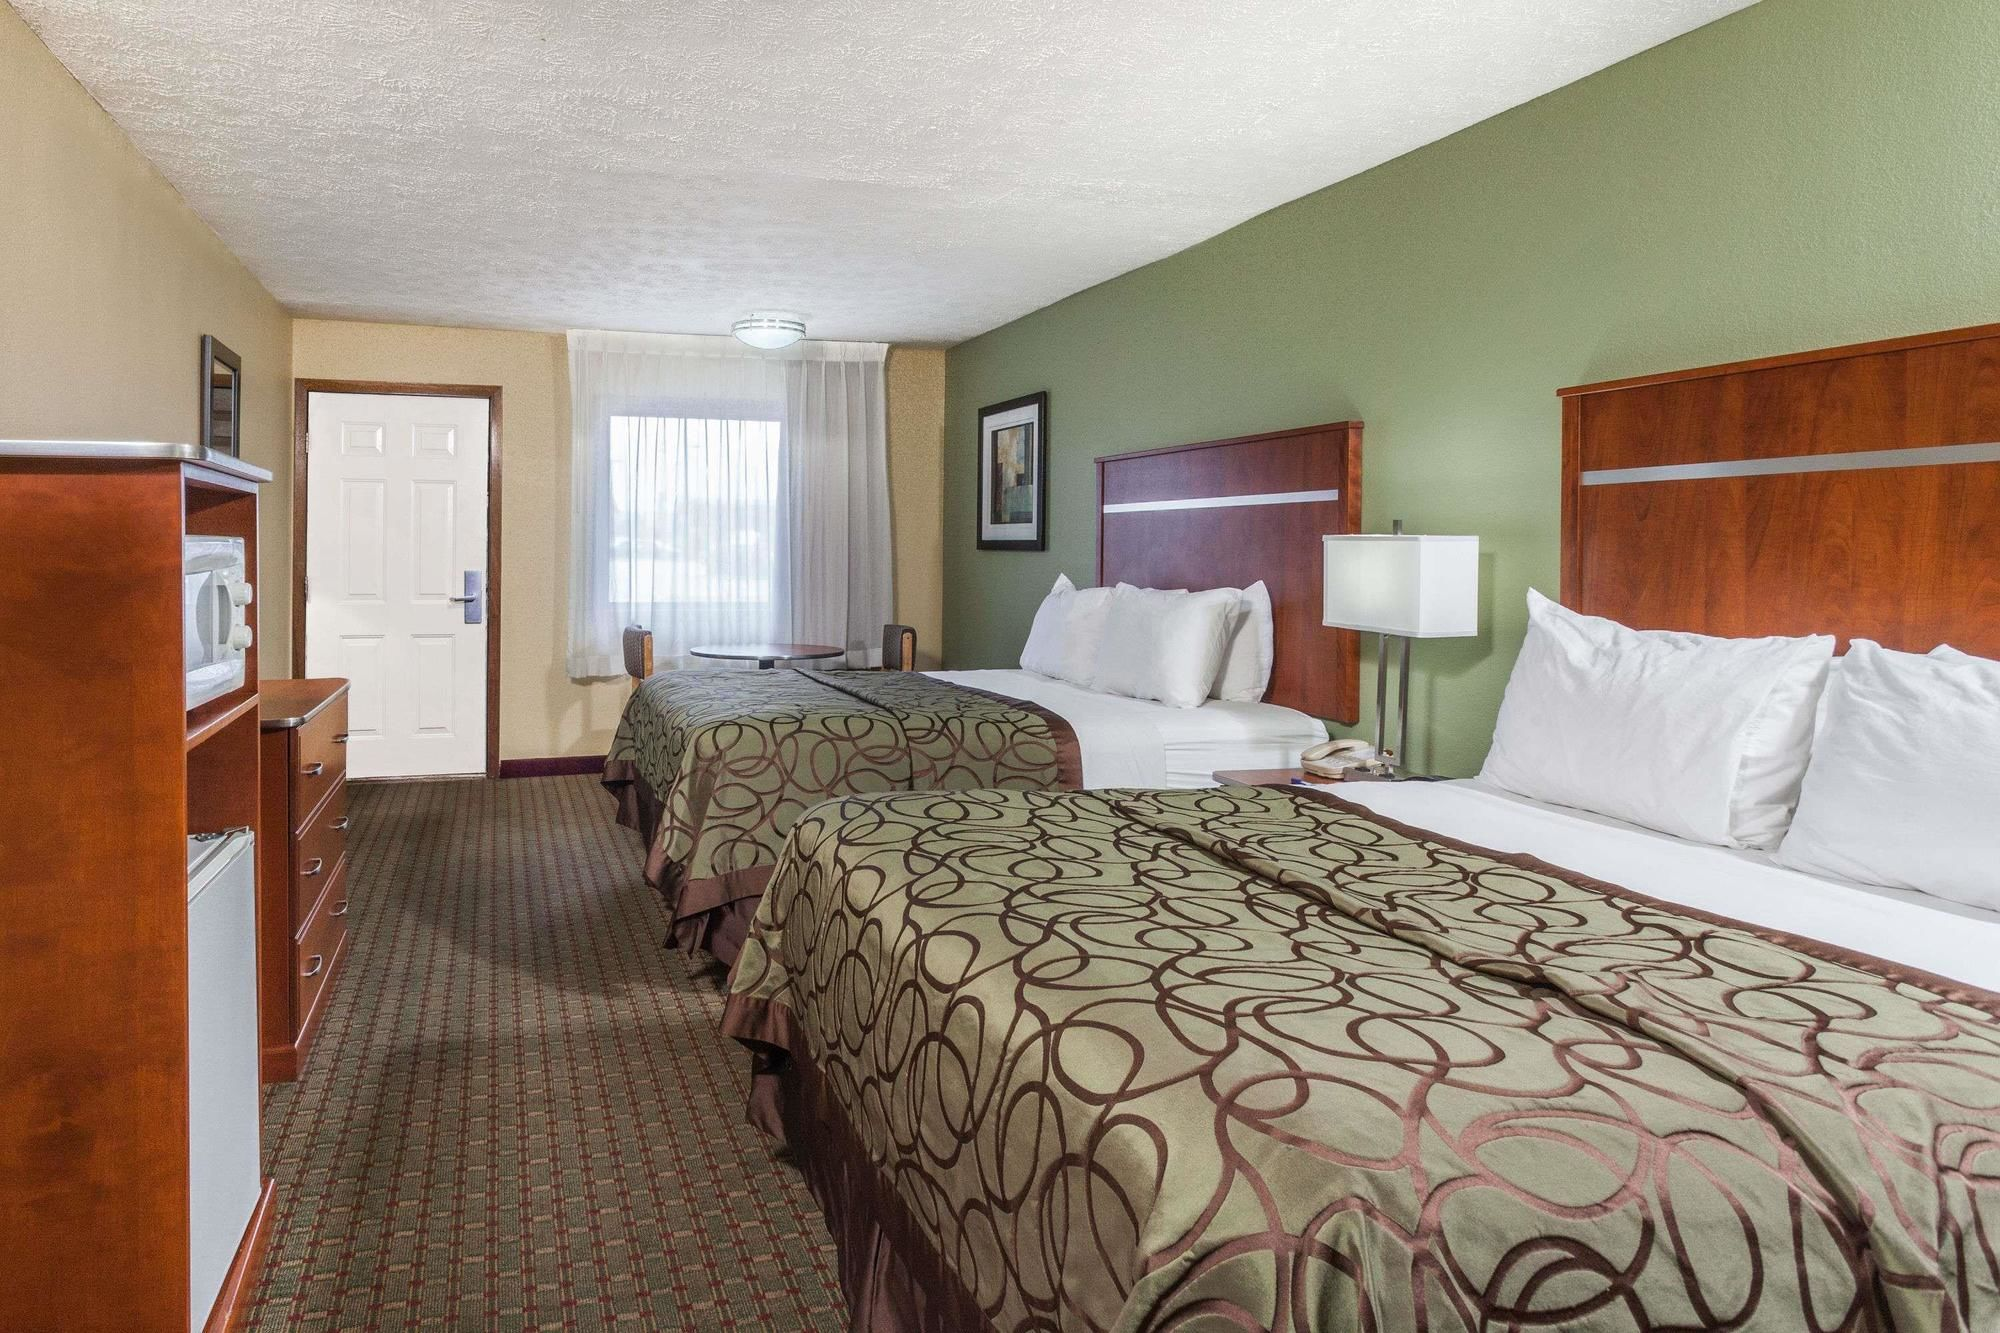 Baymont Inn & Suites Pigeon Forge in Pigeon Forge, TN